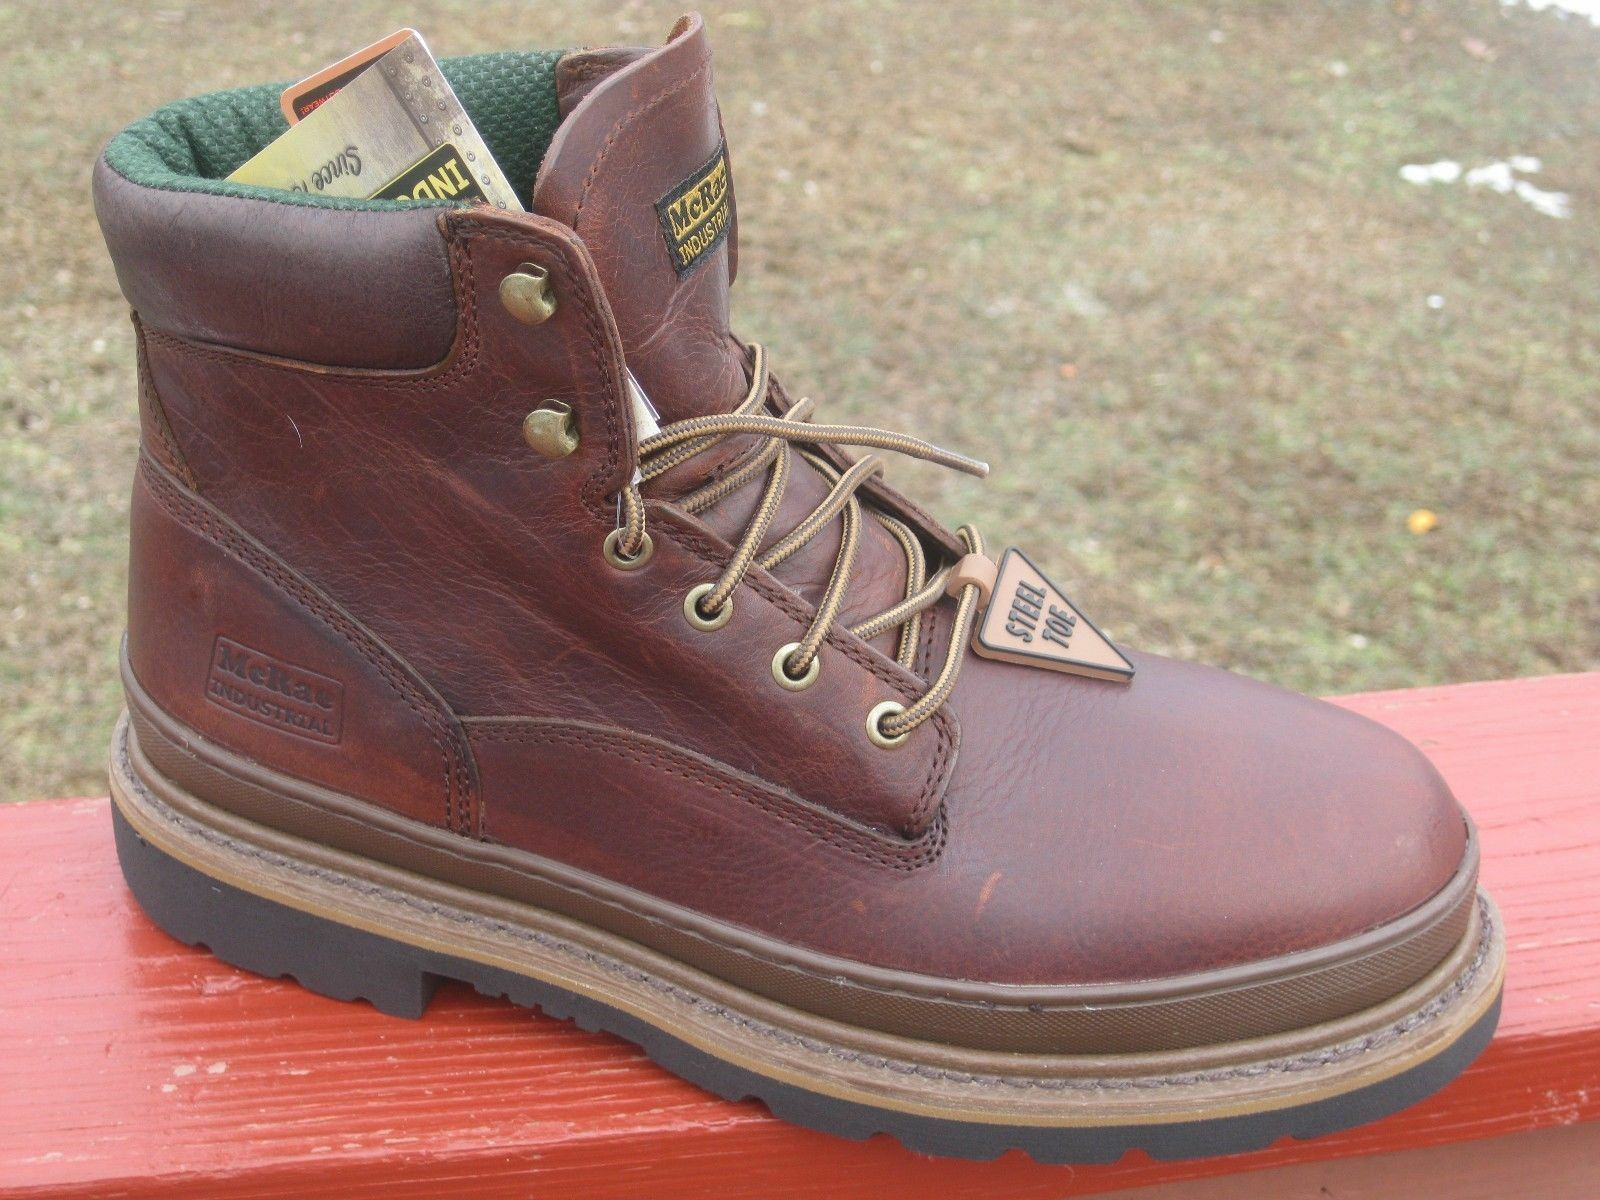 Top 10 Steel Toe Work Boots | eBay